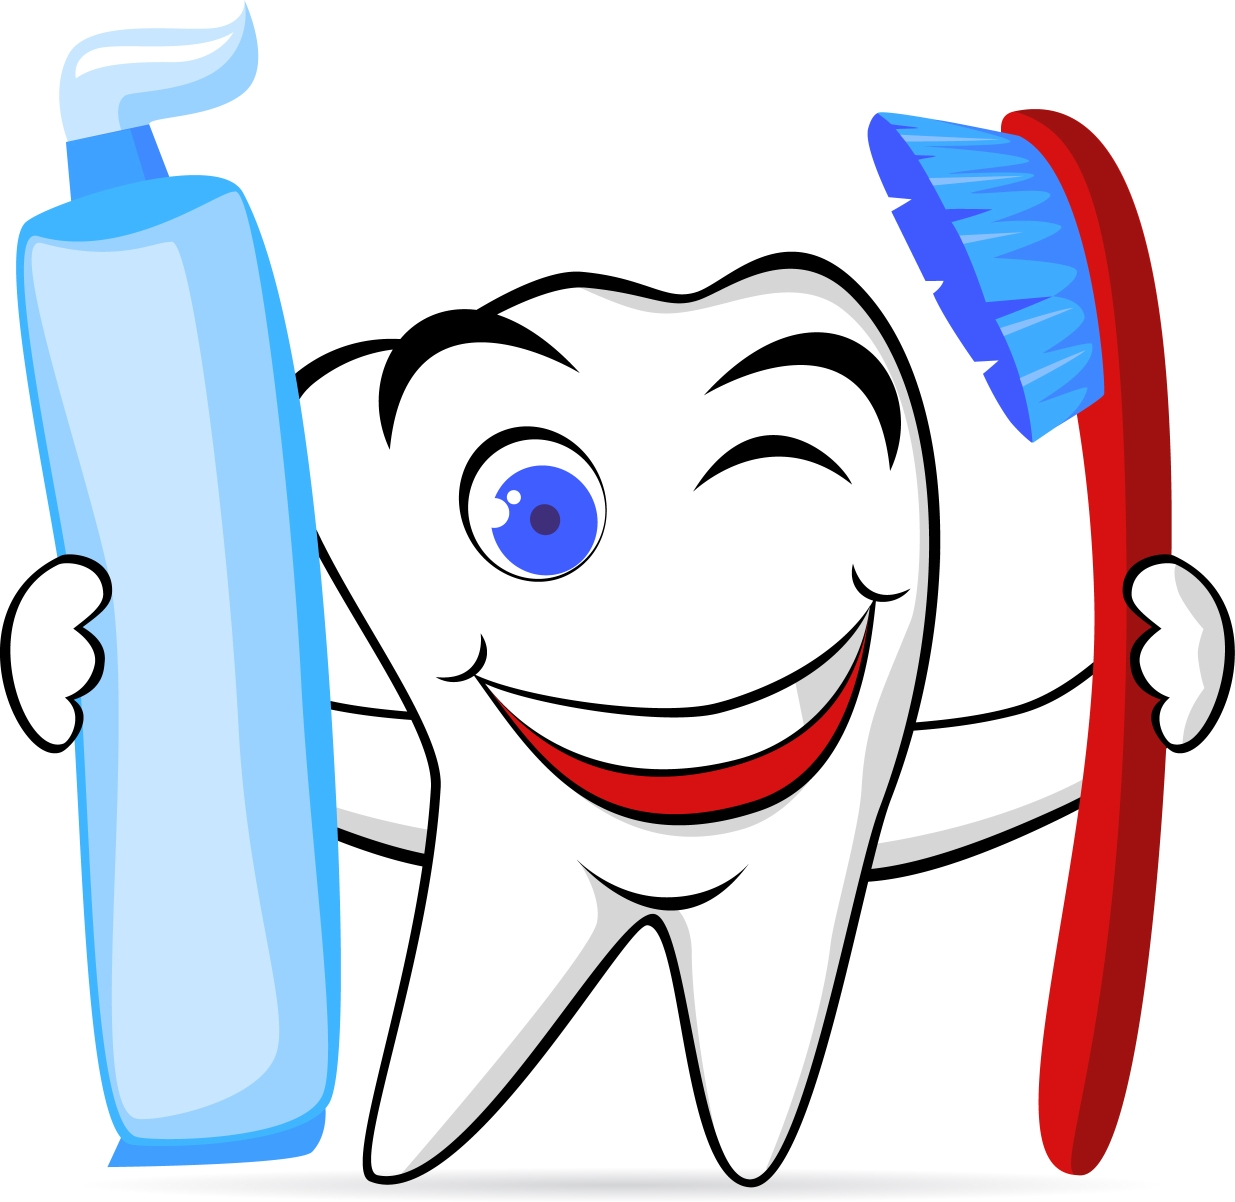 Free Teeth Cliparts, Download Free Clip Art, Free Clip Art.